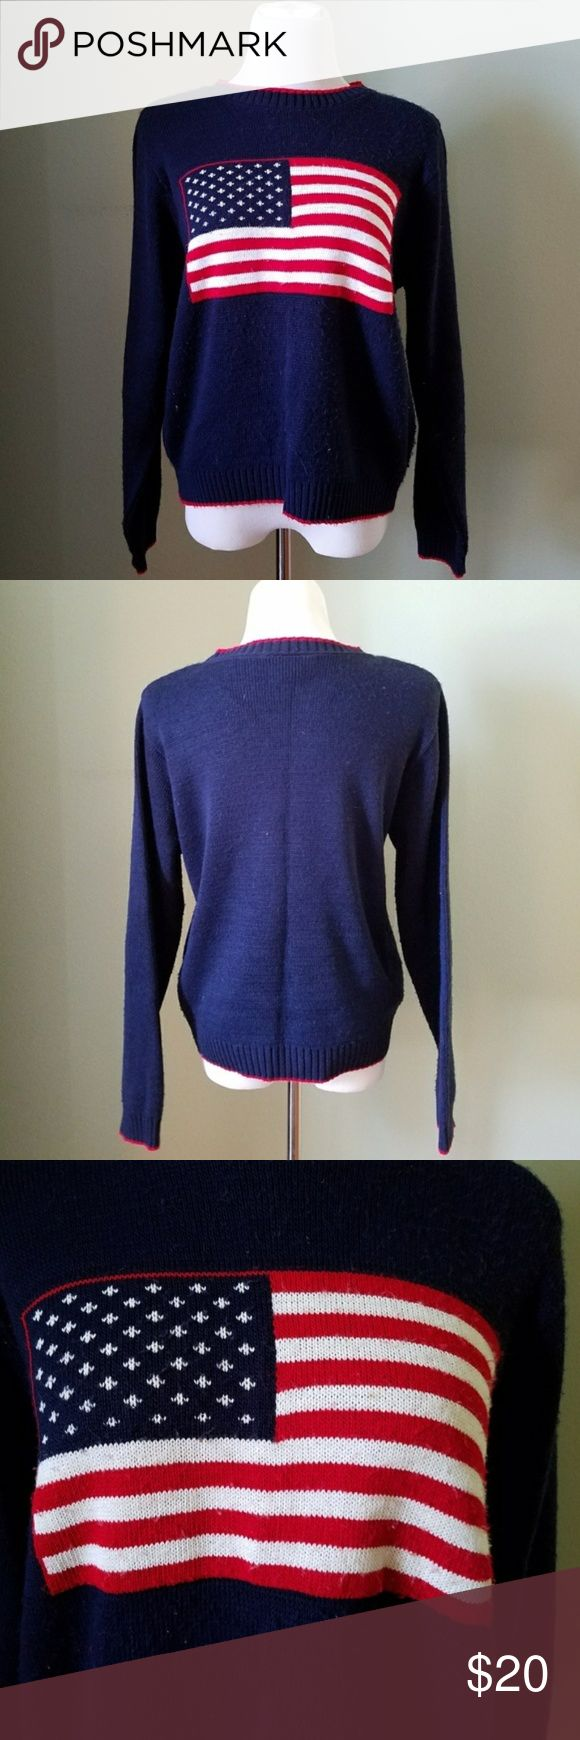 Vintage American Flag Sweater Good vintage condition. Minor flaws may include slight pulling or slight pulls. Stain pictured Mannequin is size 6 for reference  Hanes brand  Acrylic  BUNDLE your likes and shoot me and OFFER! Hundreds of items available for discounted bundle offers! Vintage Sweaters